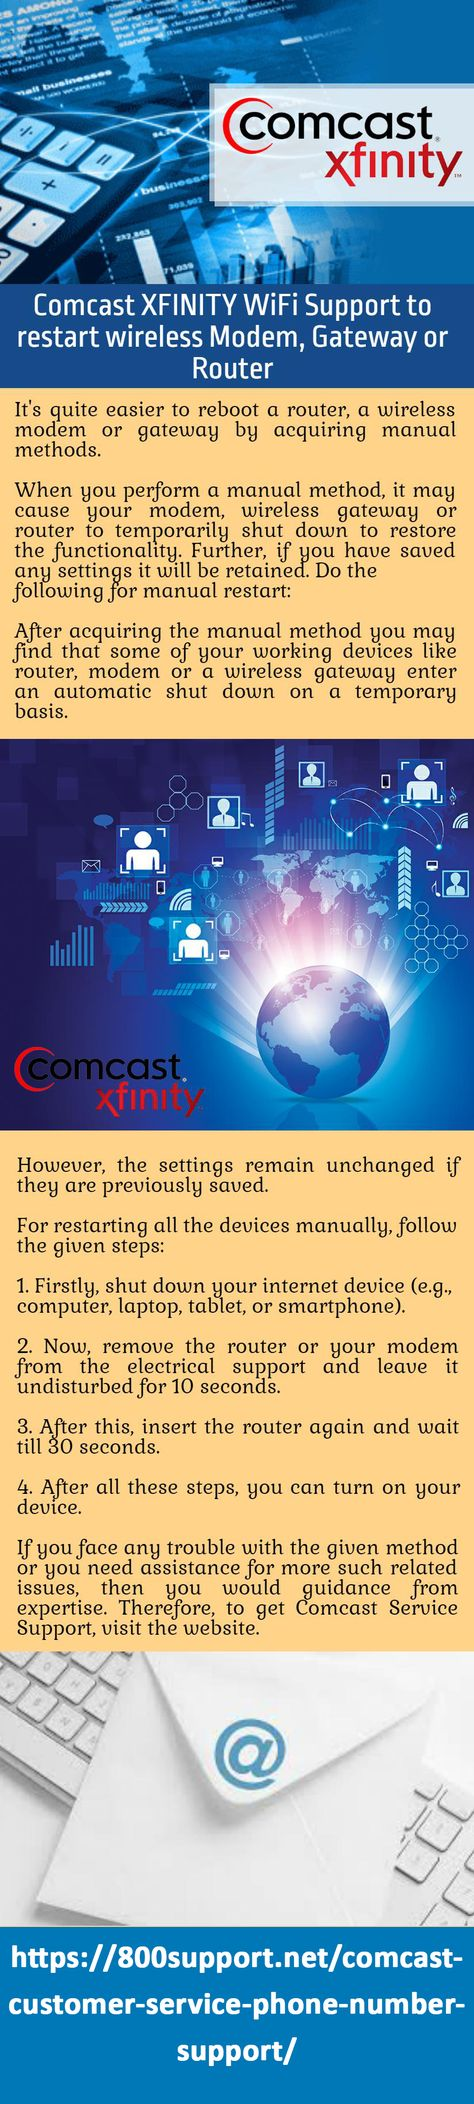 Do You Require Customer Support For Comcast And Xfinity Comcast Third Party Tech Support Team Is Here To Answer Your Inquiries Just Comcast Xfinity Digital Cable Tv Phone